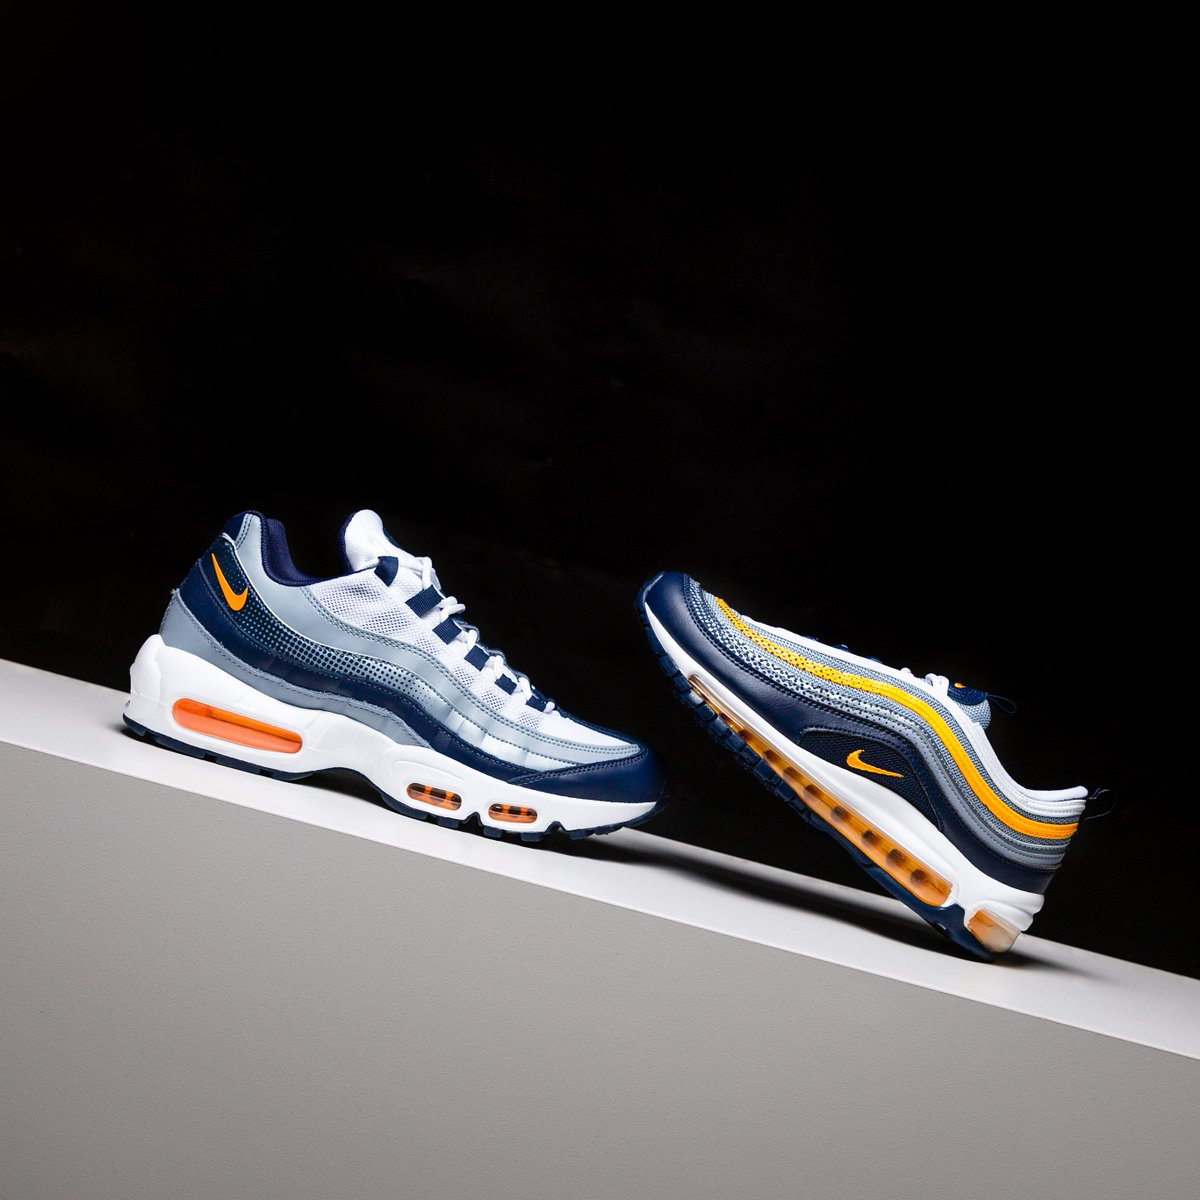 febf1740eb Air Max 97 in Grade school sizes and Air Max 95 in men's and grade school  sizes available at all Kicks Lounge locations 5/30. #nikepic.twitter.com/  ...